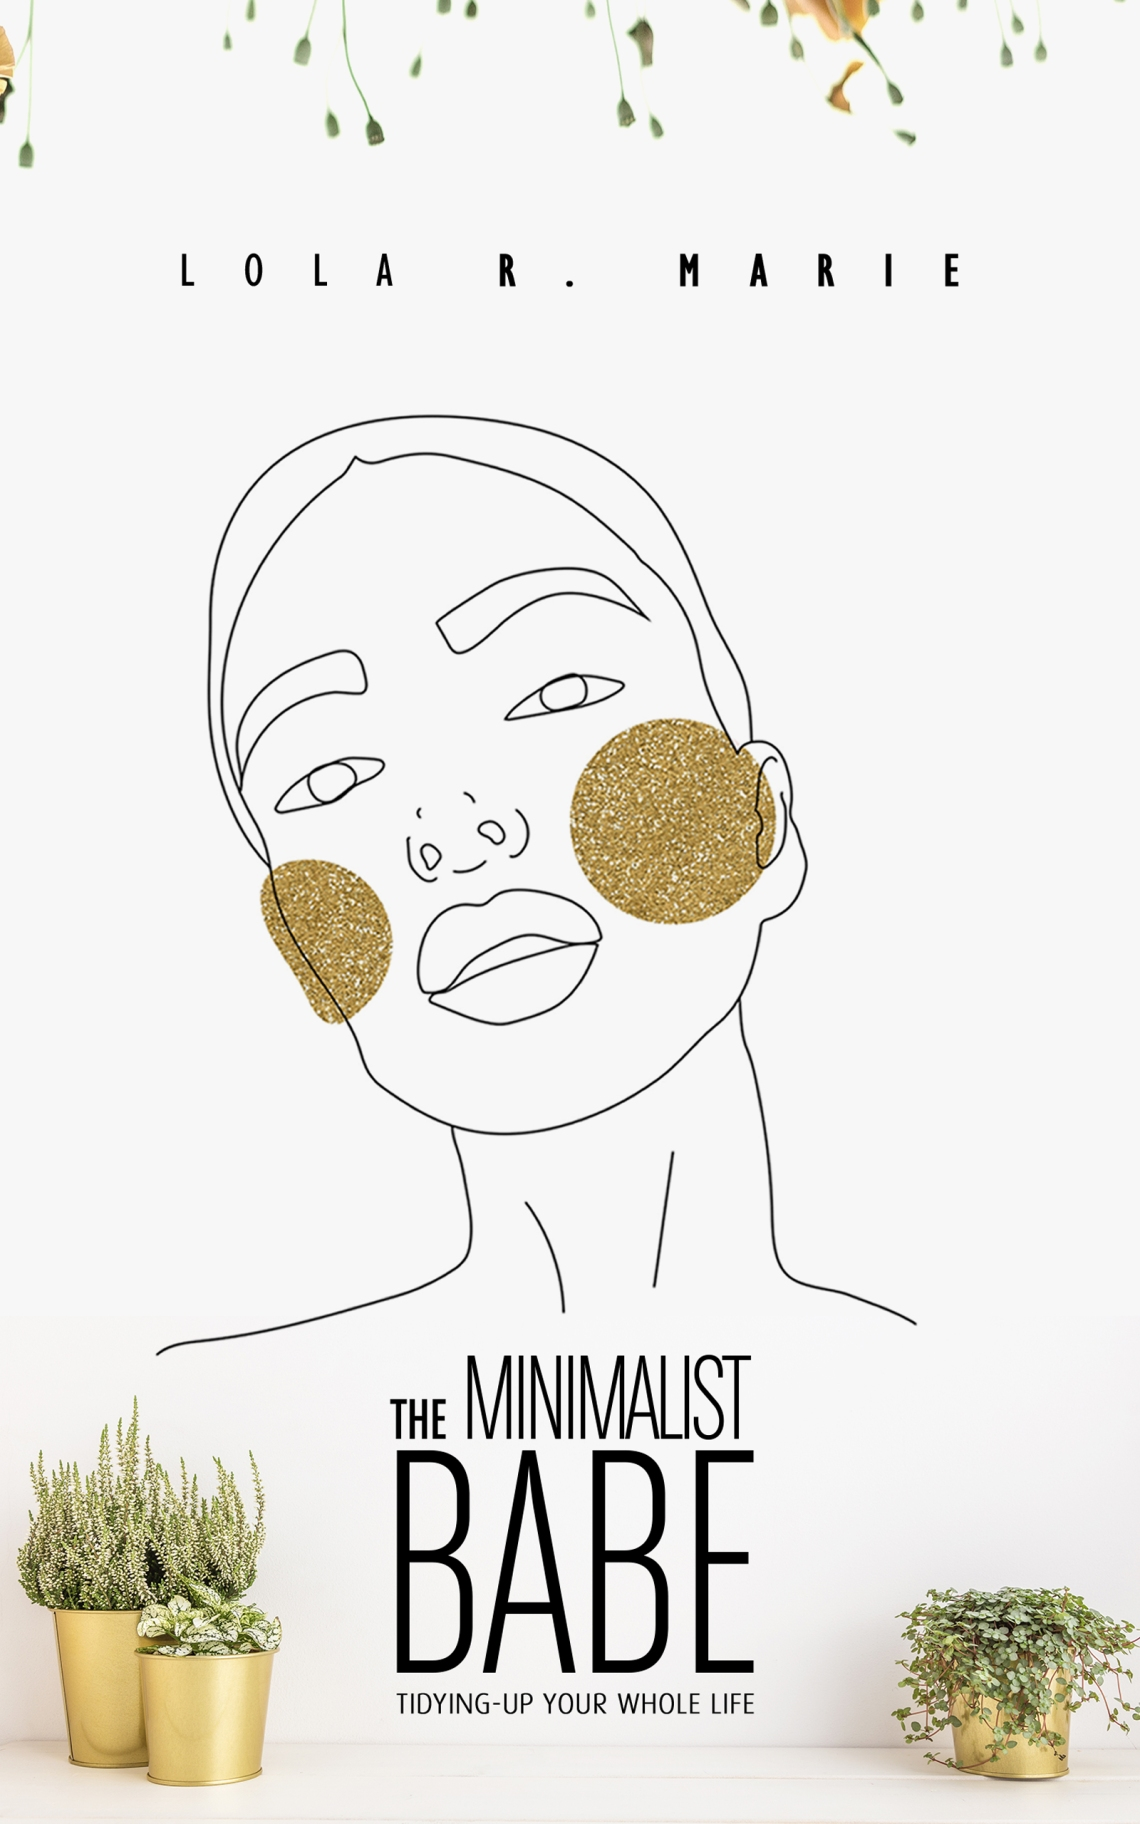 The Minimalist Babe Book Cover